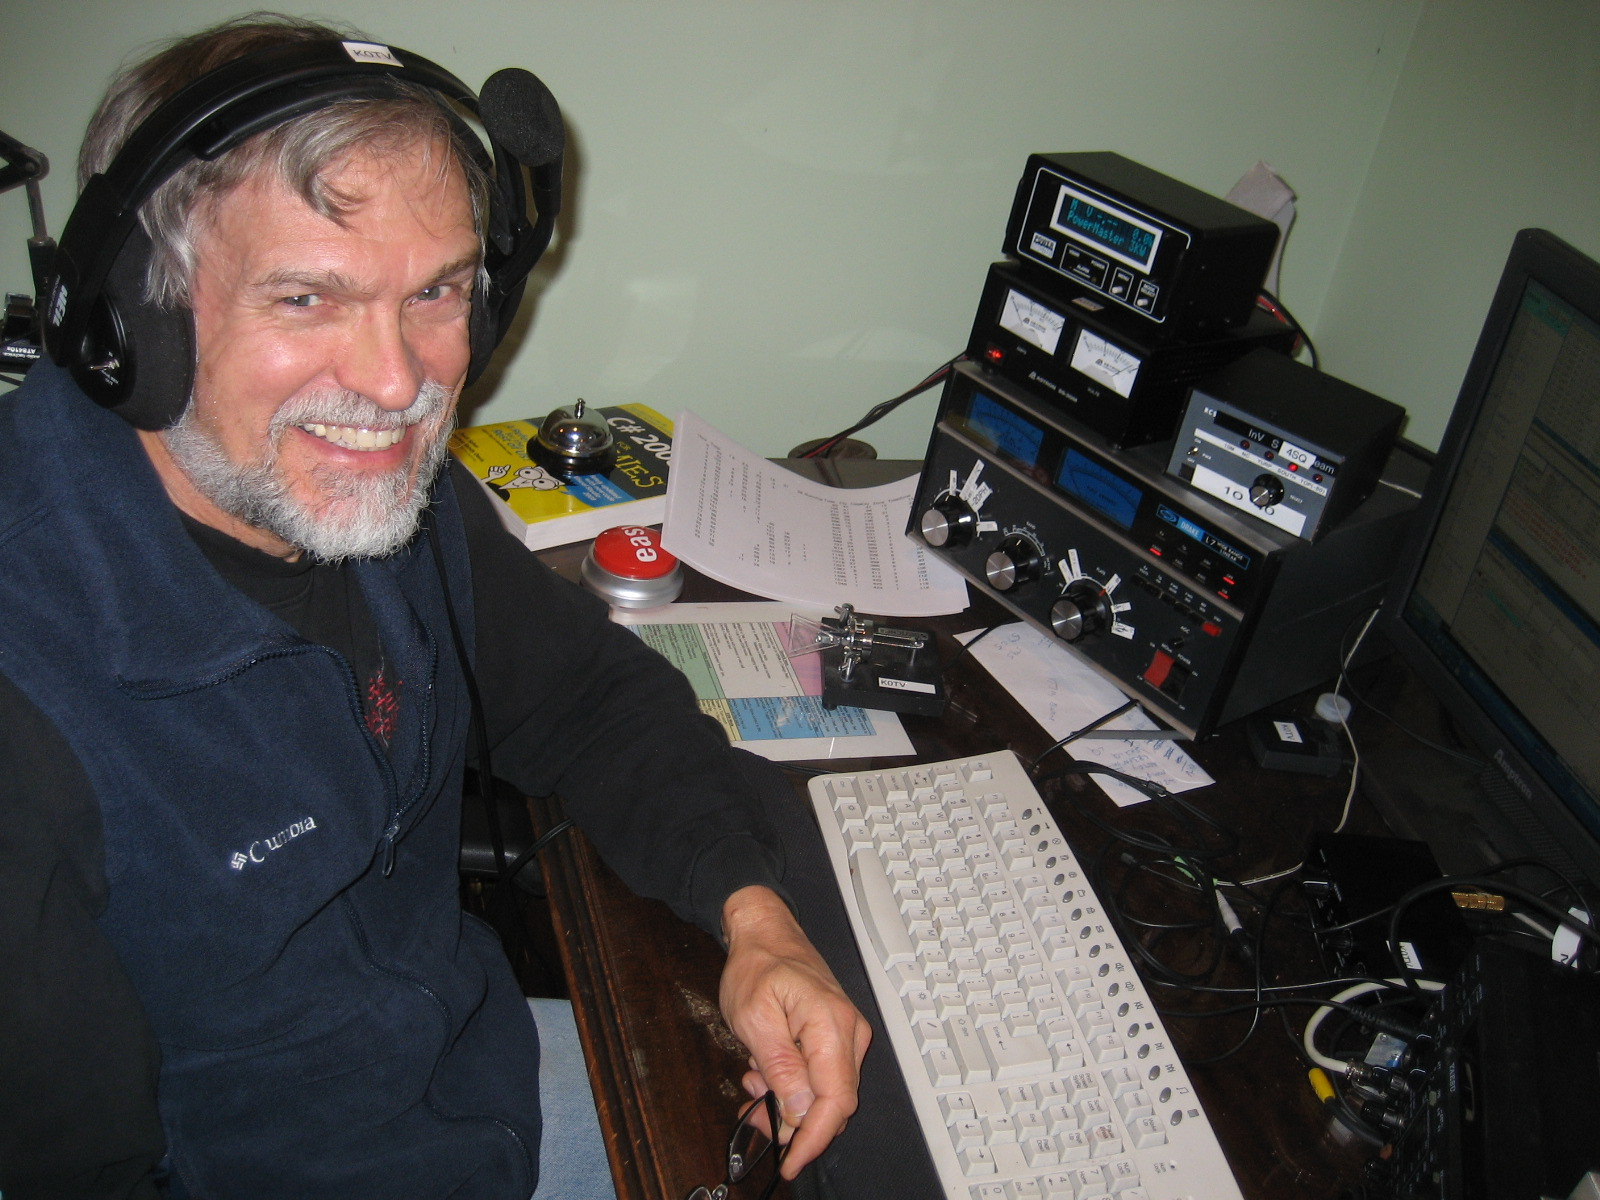 Photo of a contest operator at the former K0TV contest station